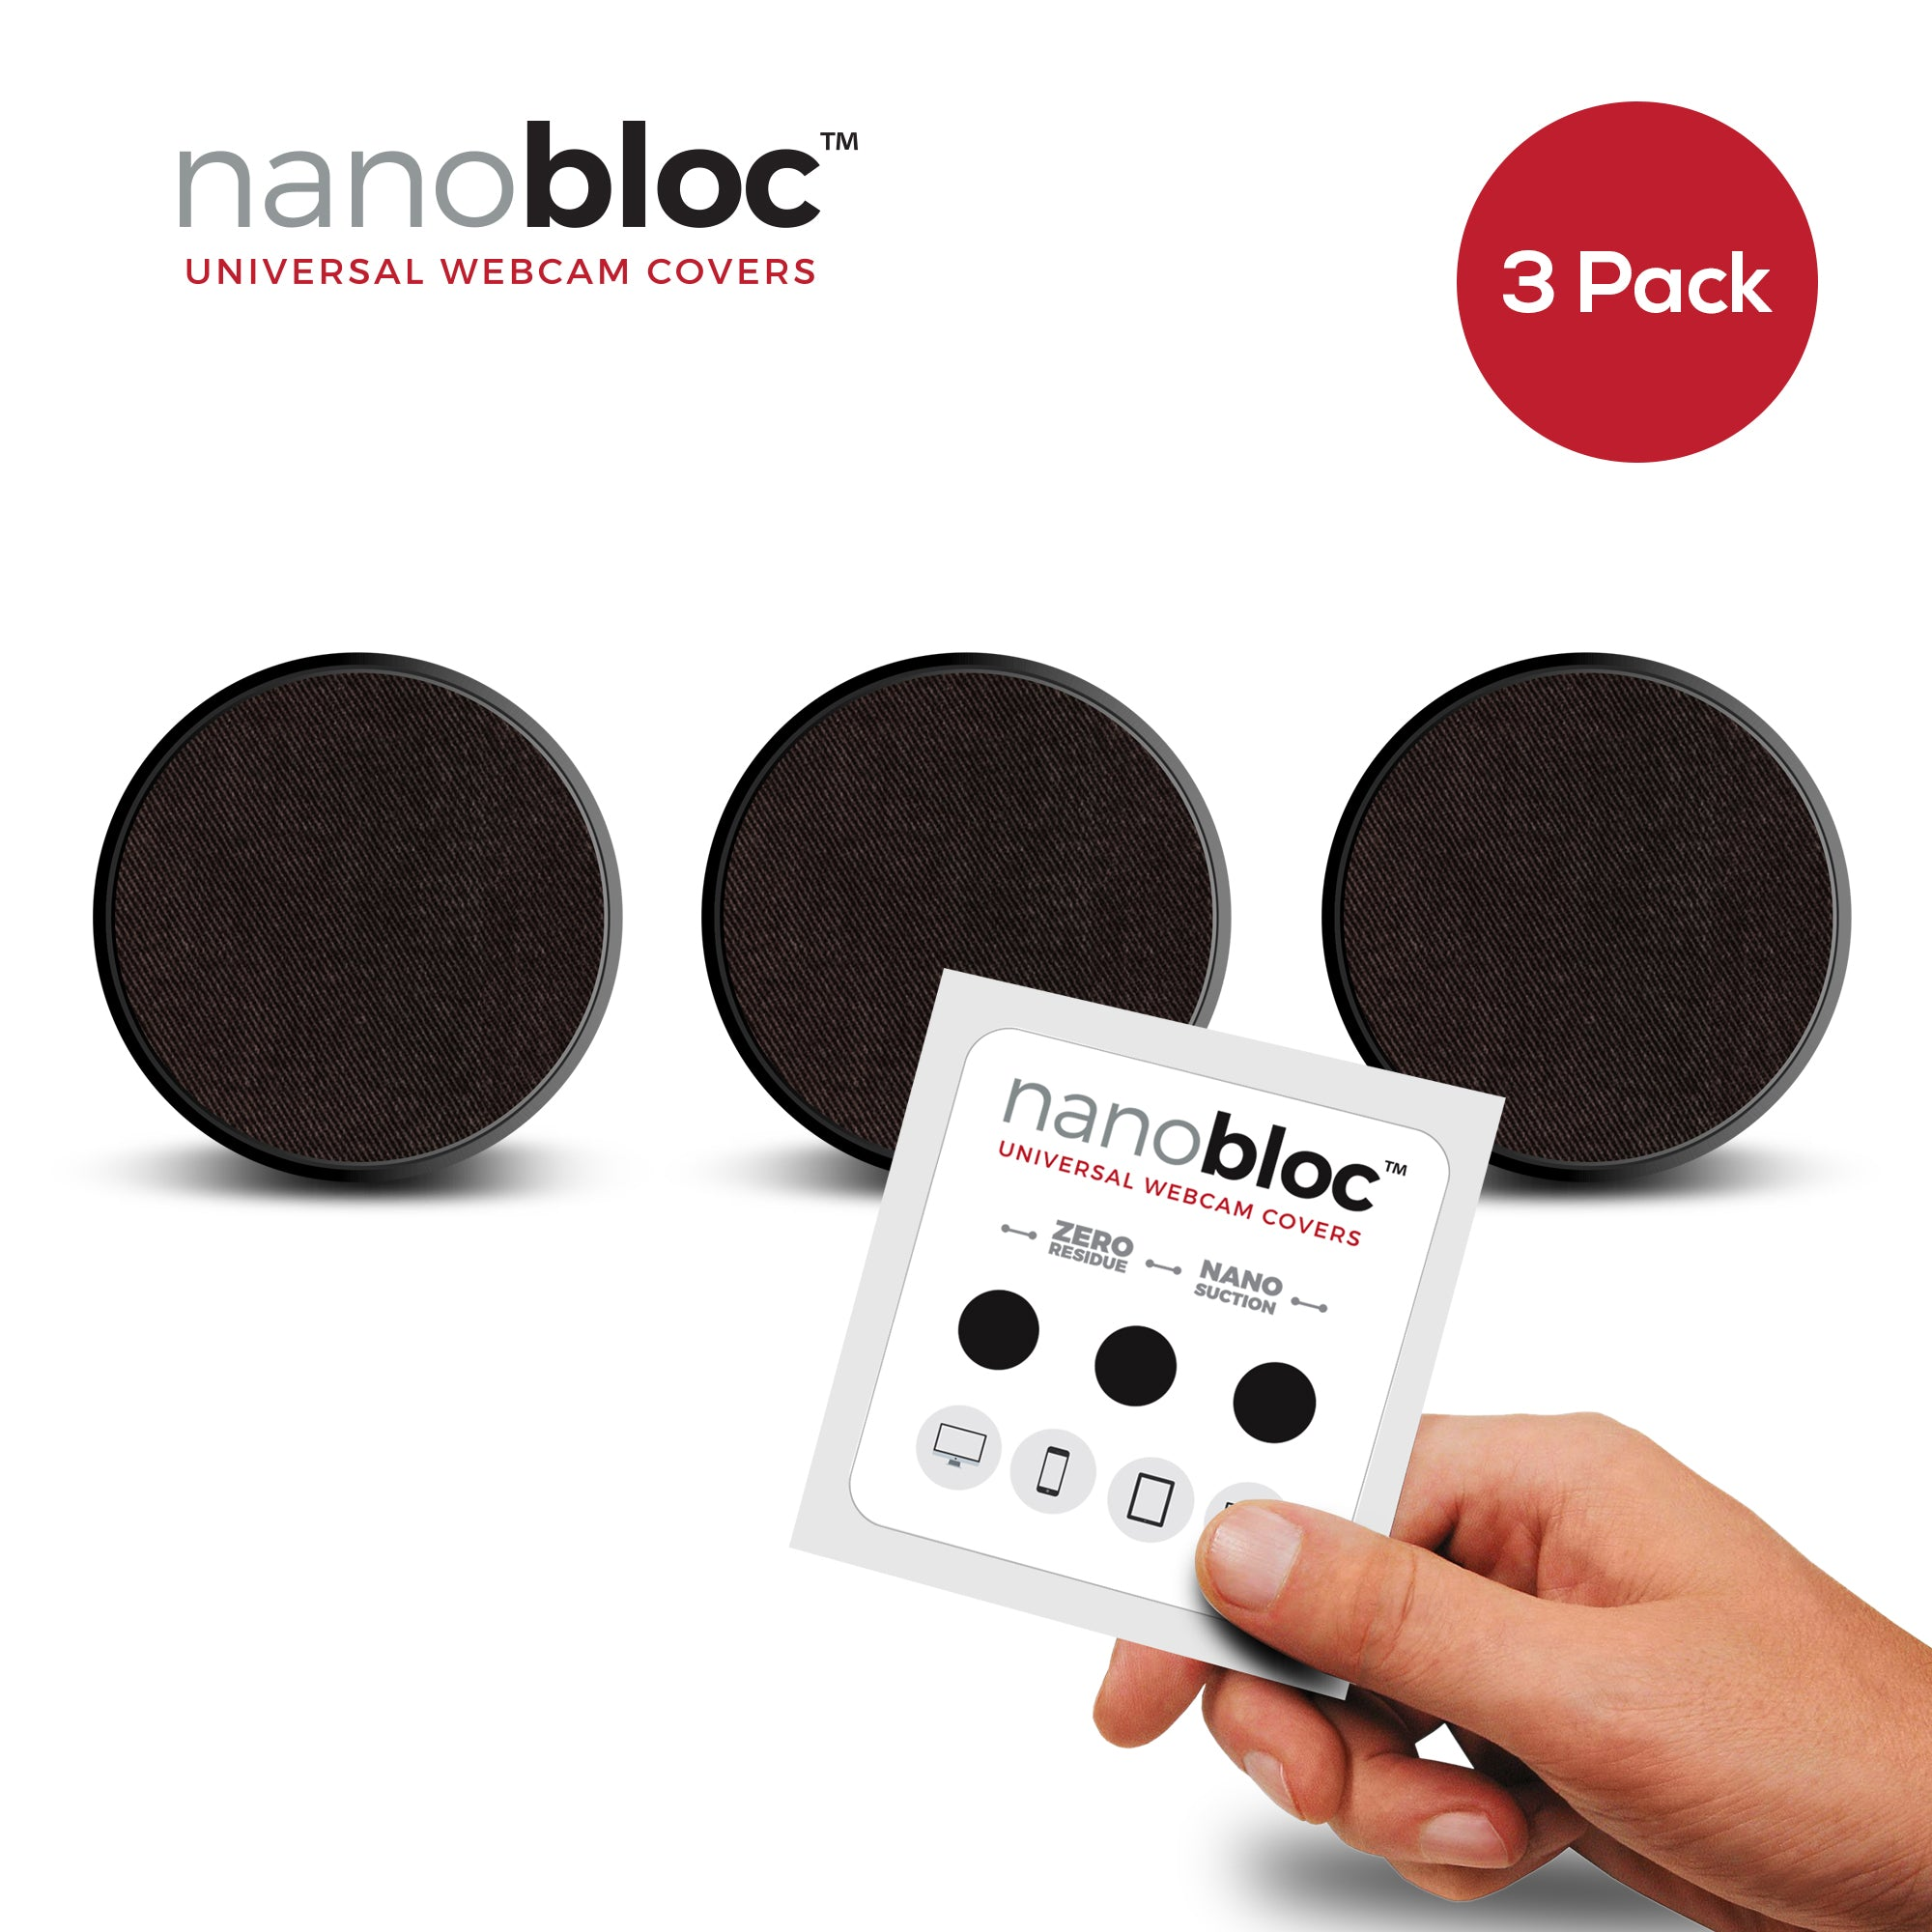 Nanobloc Universal Webcam Cover from Eyebloc - Box of 50 Packs